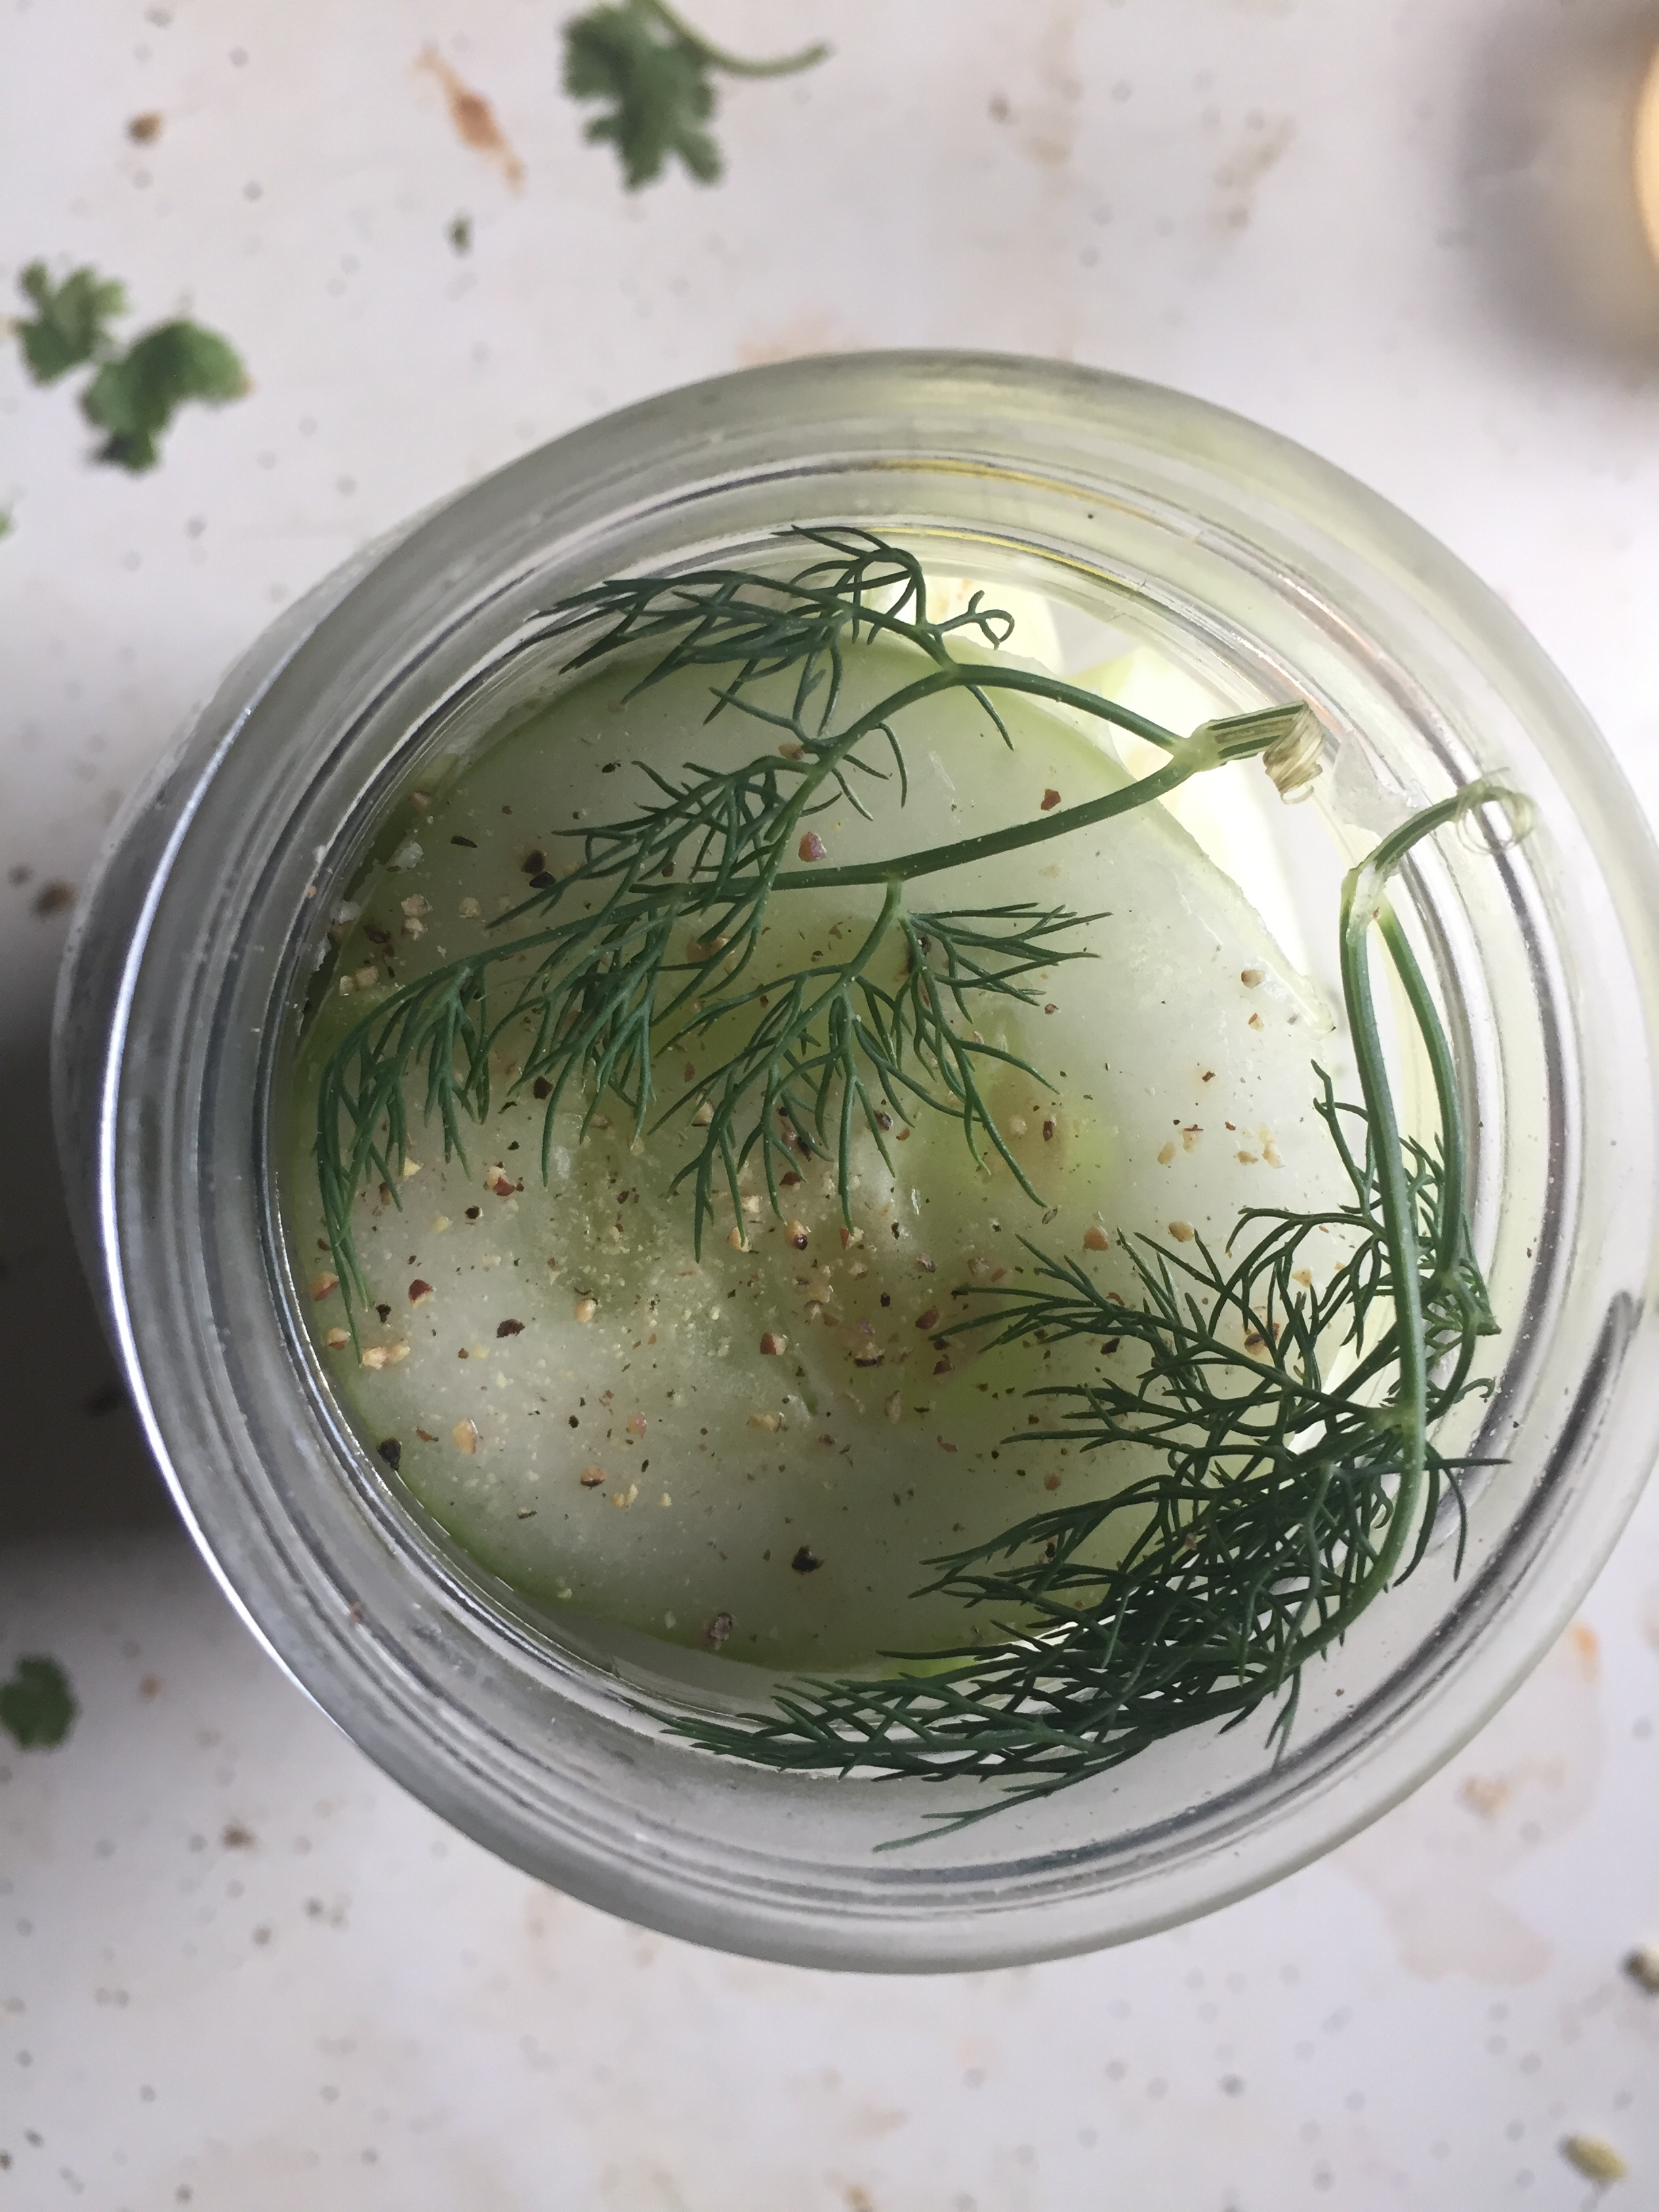 Crush black pepper into the cooled brine. Pour the cool brine into the mason jars so the brine goes up to the top of the jar. Put the lids on and refrigerate in the fridge for 3 days.  Optional: Spicy garlic dill pickles (see below)